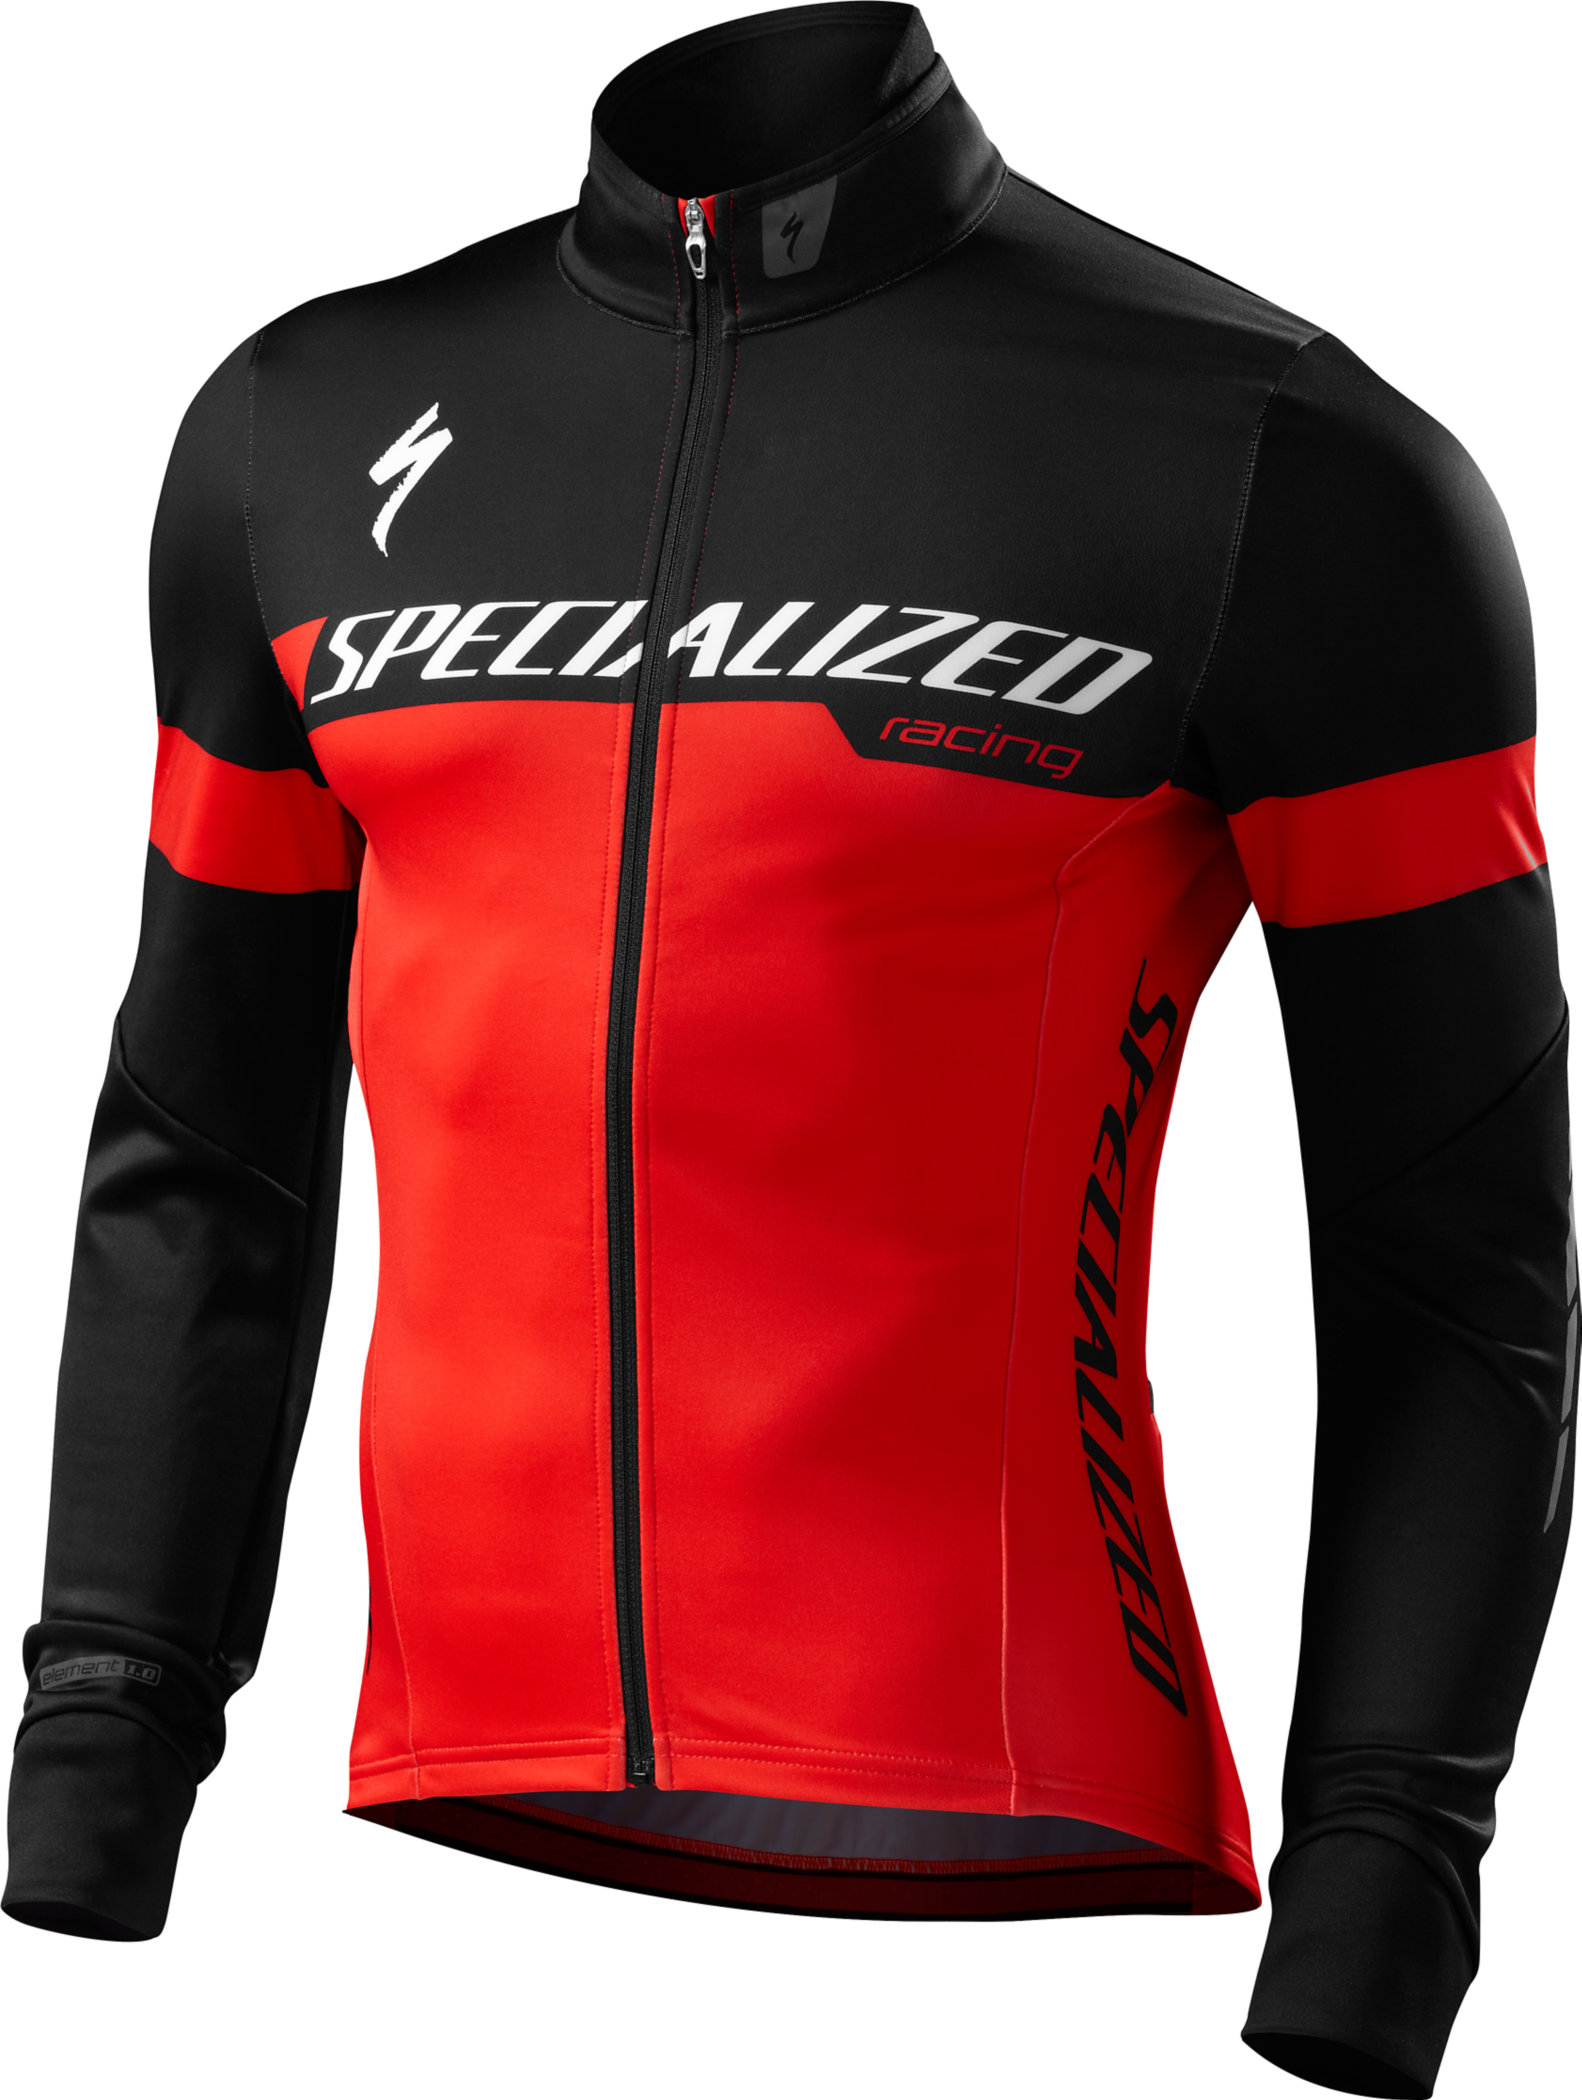 SPECIALIZED ELEMENT 1.0 JACKET RED/BLK TEAM S - Alpha Bikes